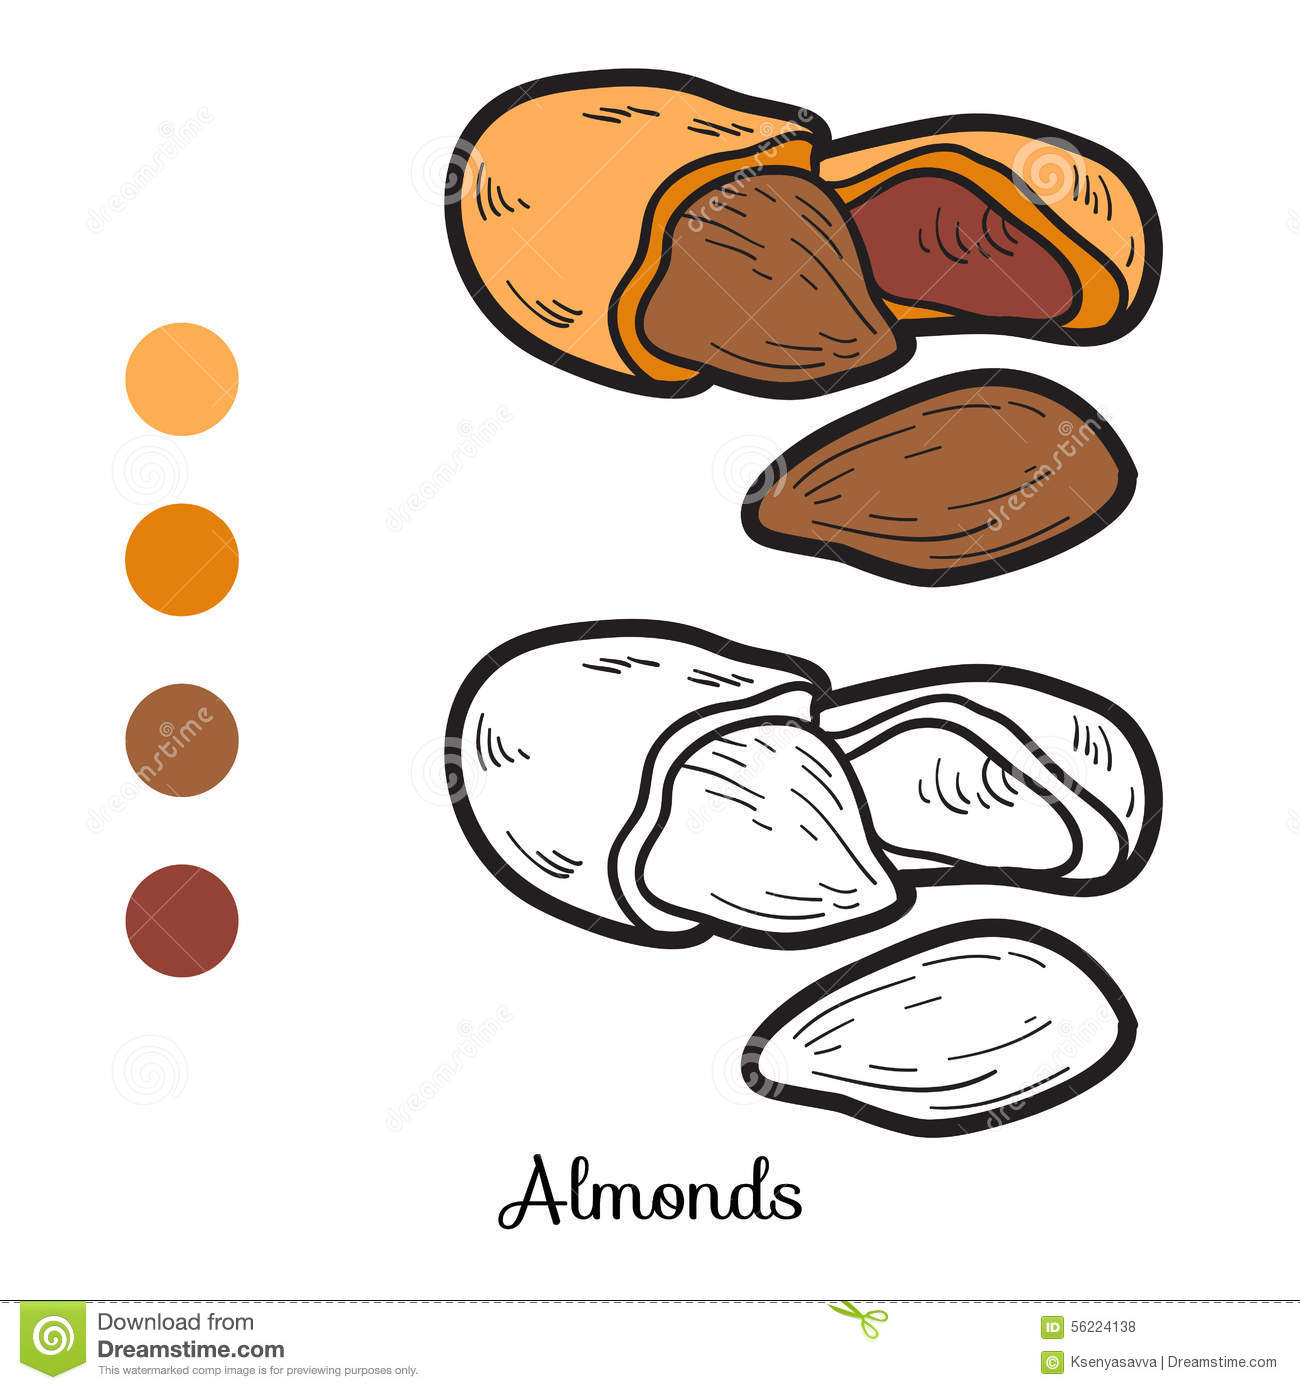 Almond coloring #13, Download drawings